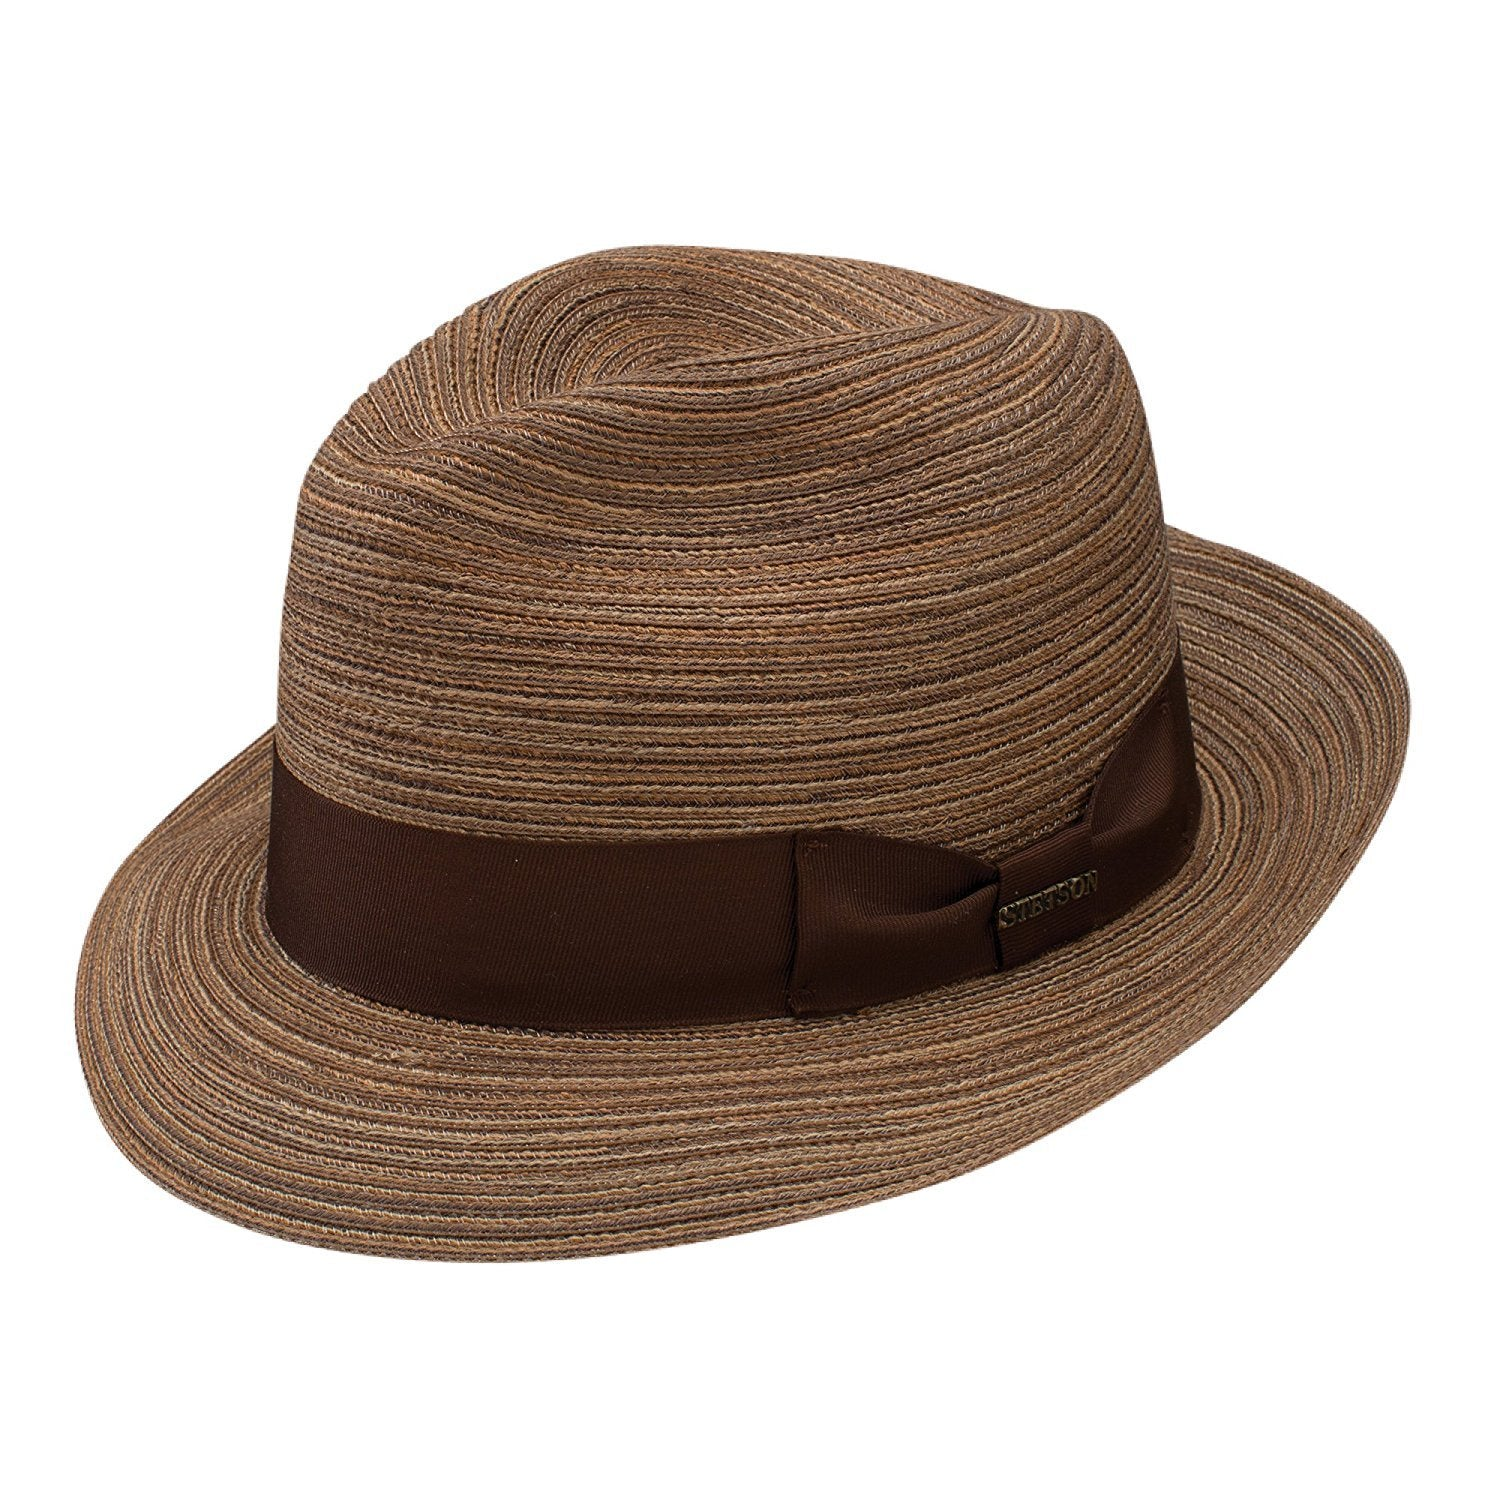 Stetson Regatta Cotton Braid Fedora Hat - Brown - Dapperfam.com